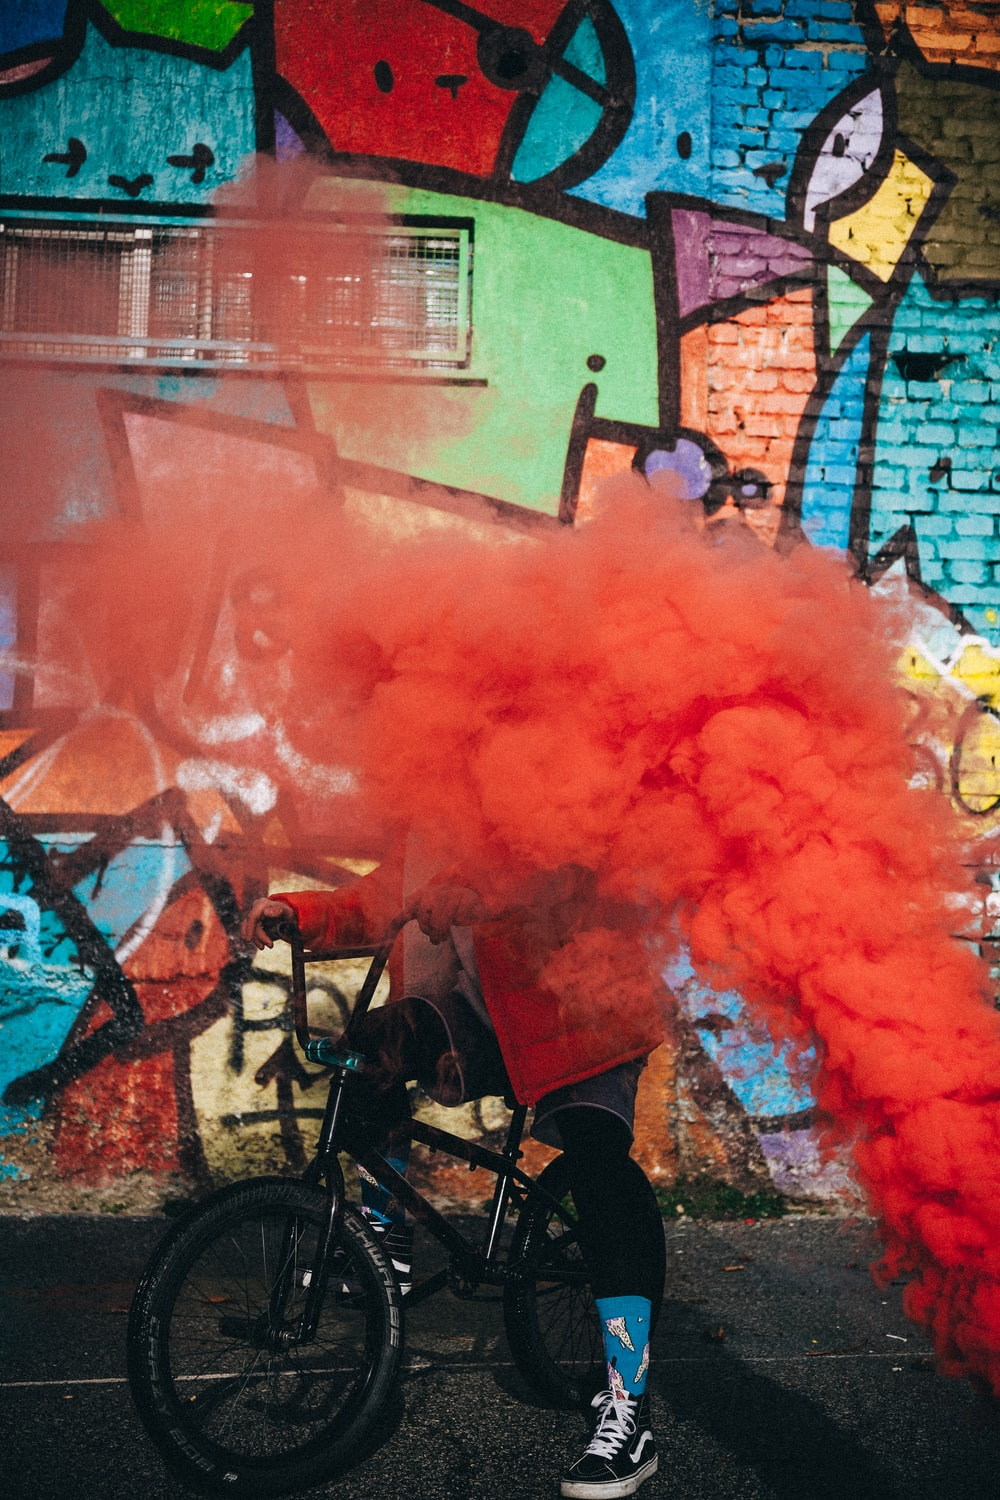 red smoke going towards person on bike